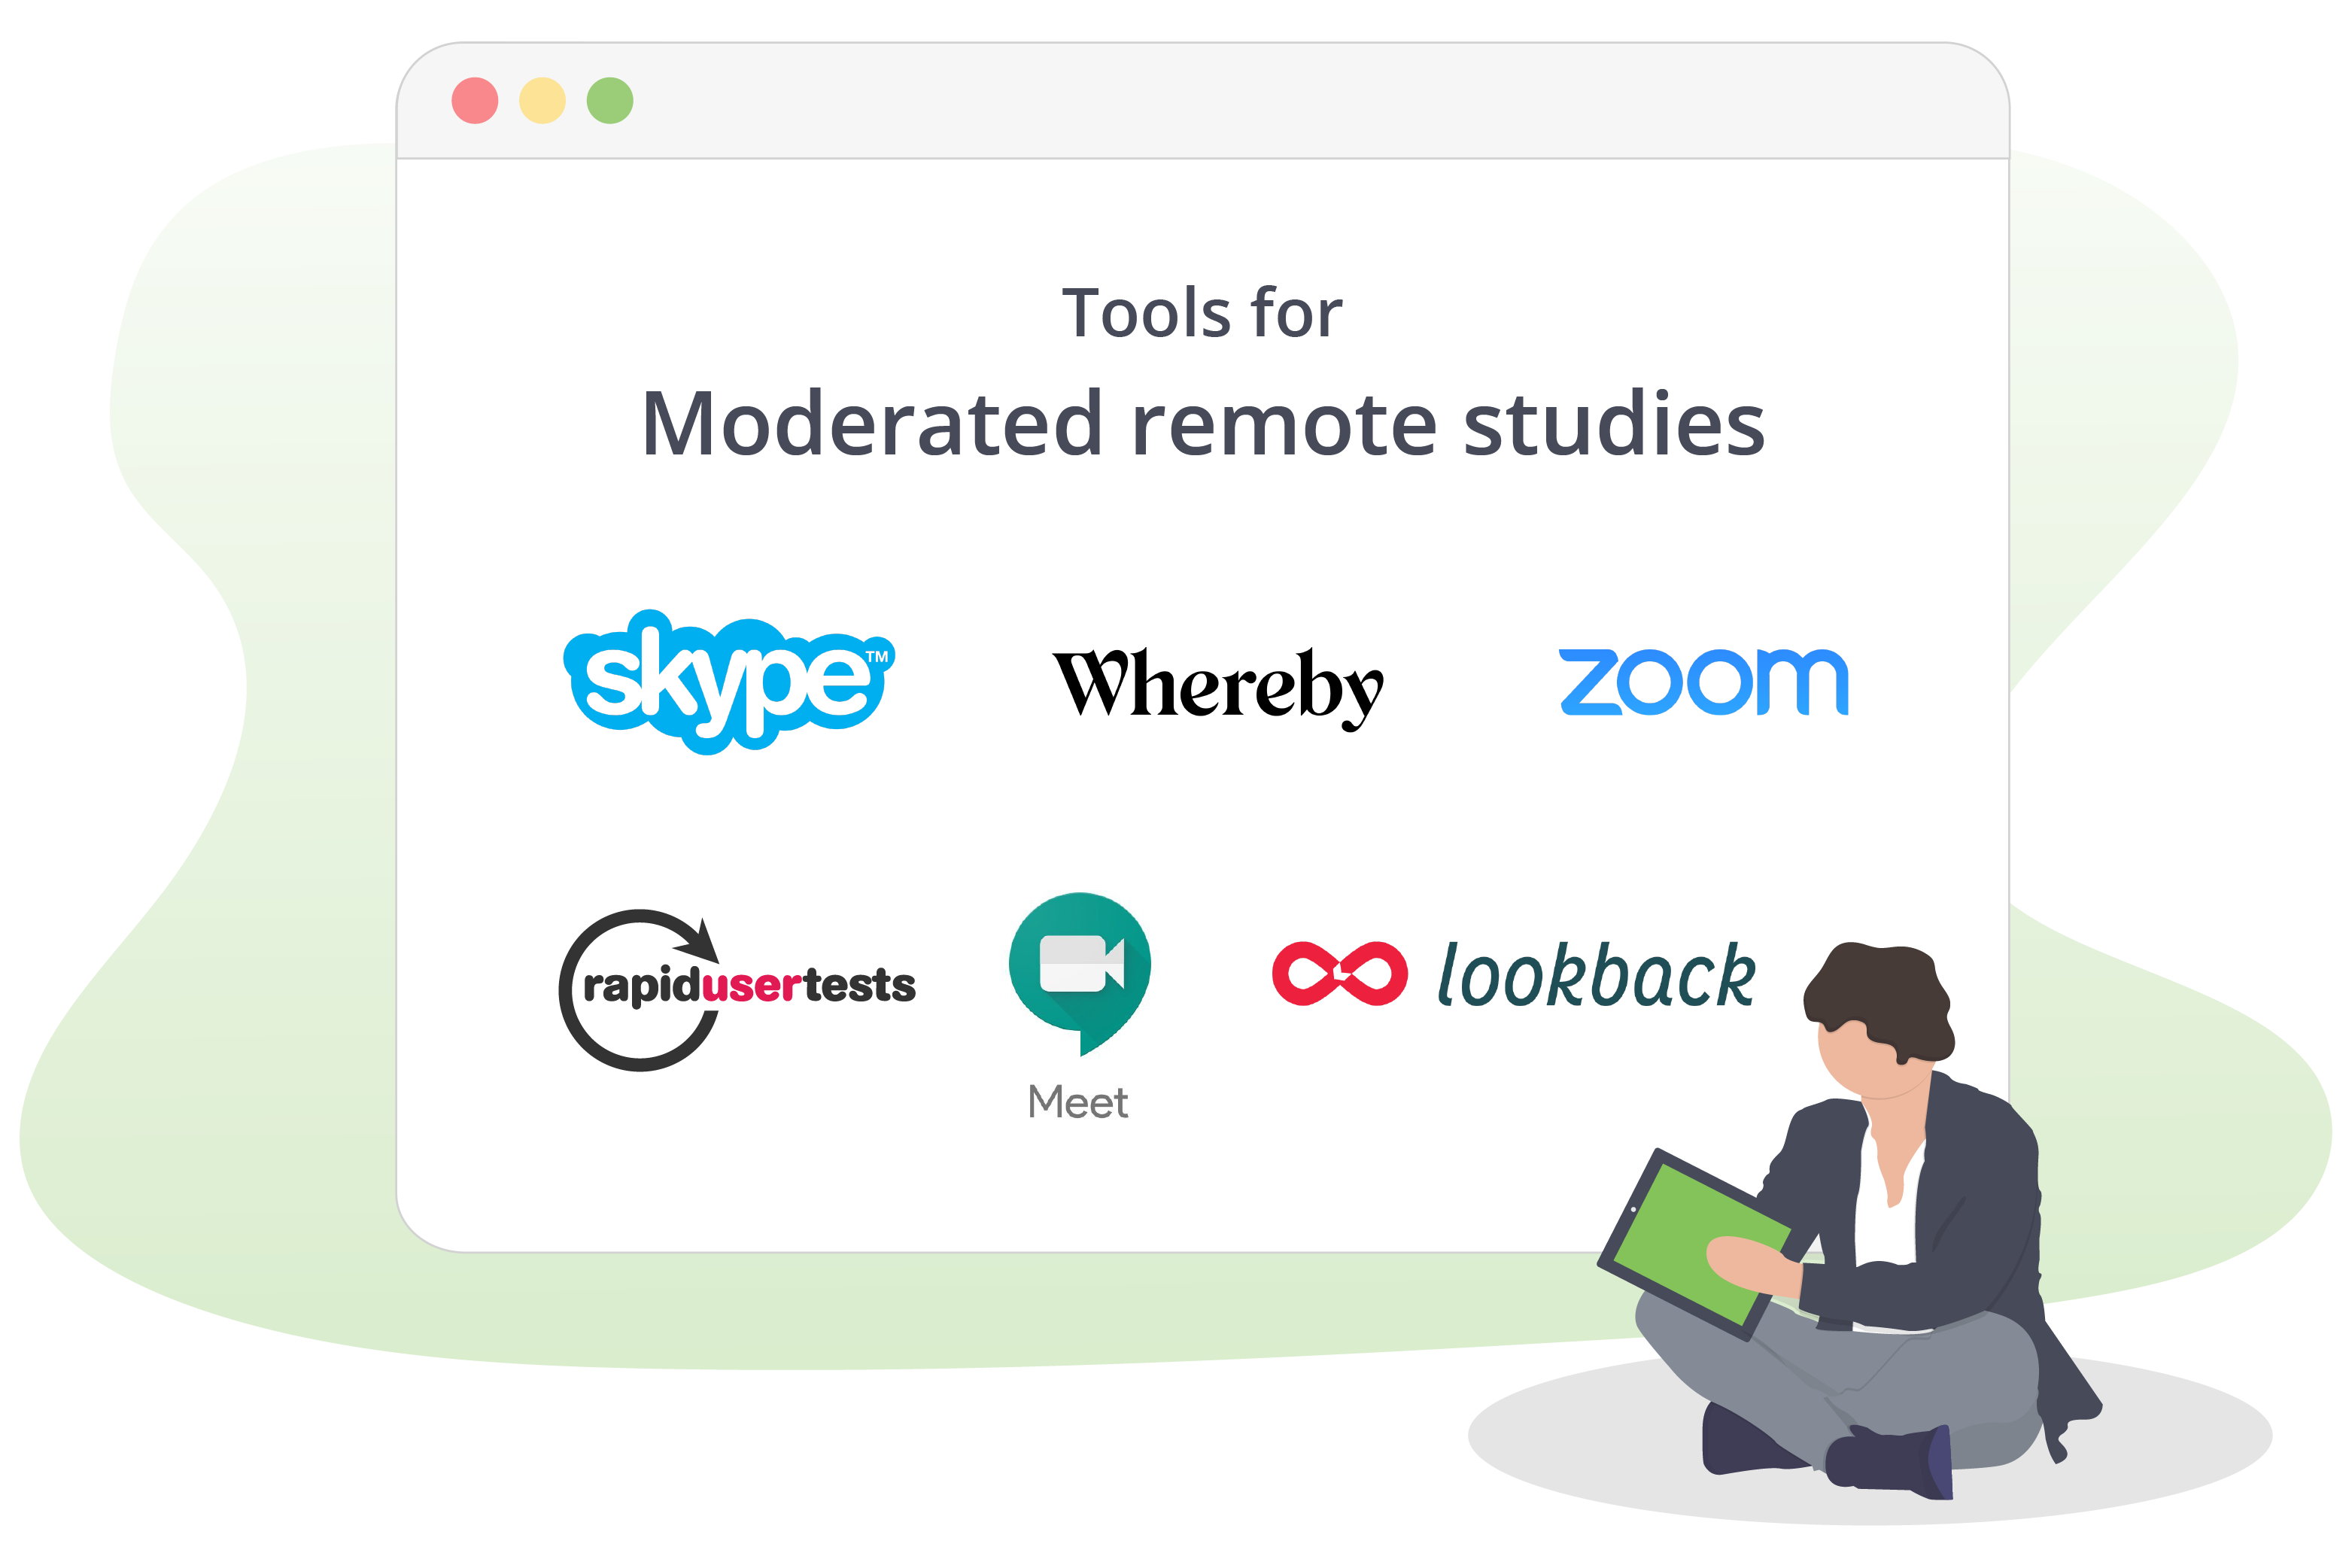 Tools for moderated remote studies